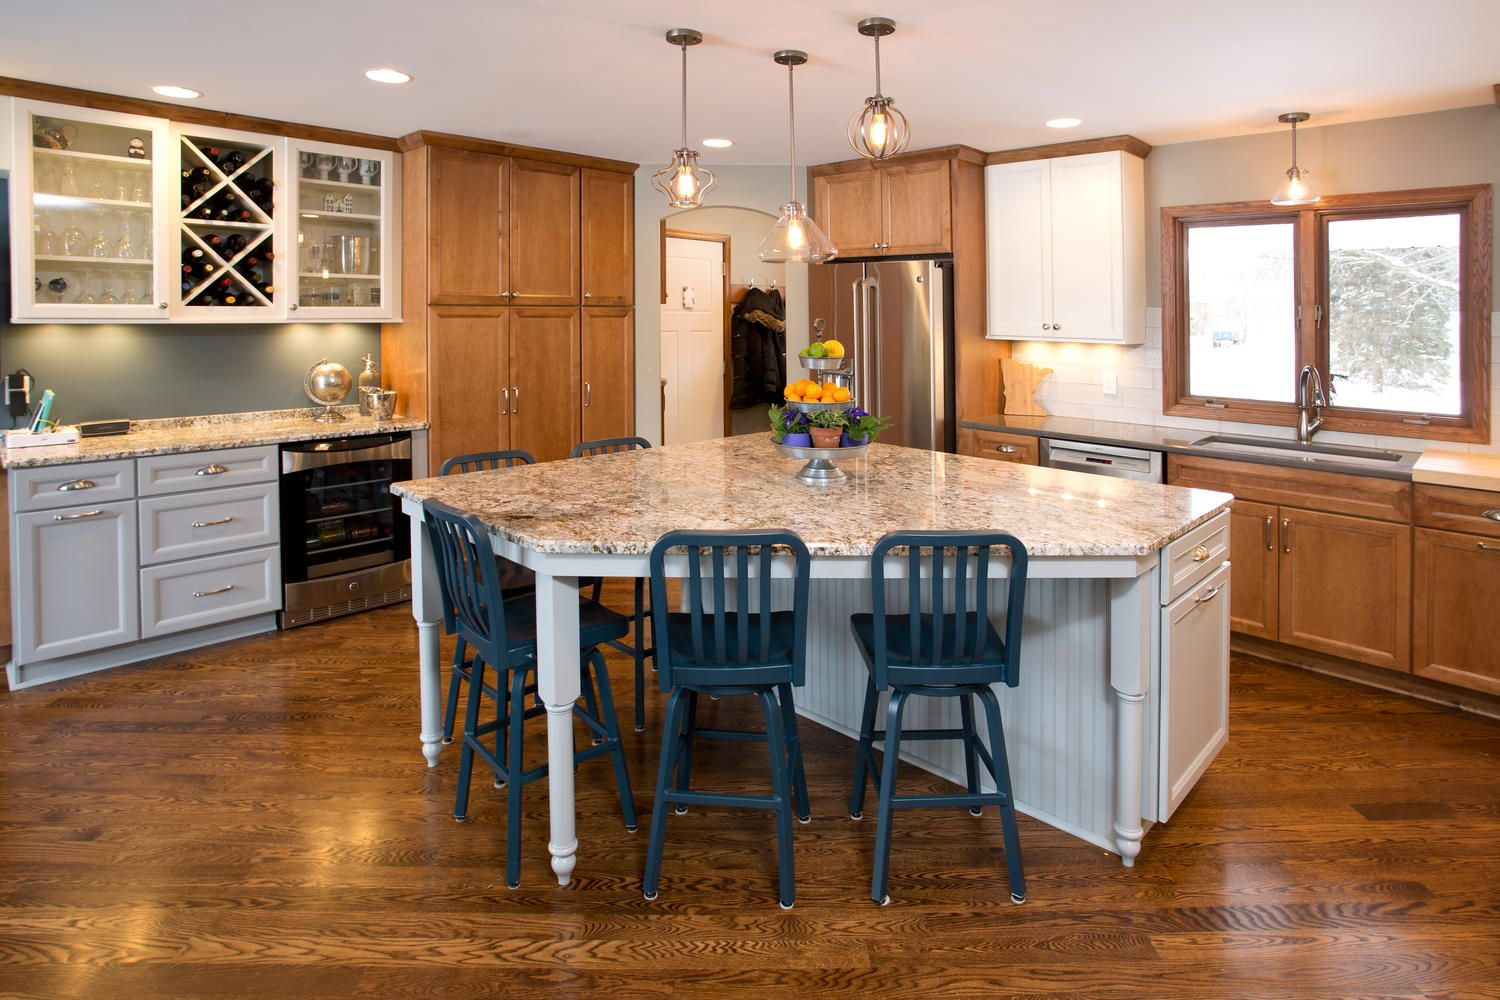 Updating Oak Cabinets Doors Floors Trim Living With Oak 101 New Spaces Remodeling Contractor White Kitchen Oak Trim Oak Cabinets Oak Floor Kitchen